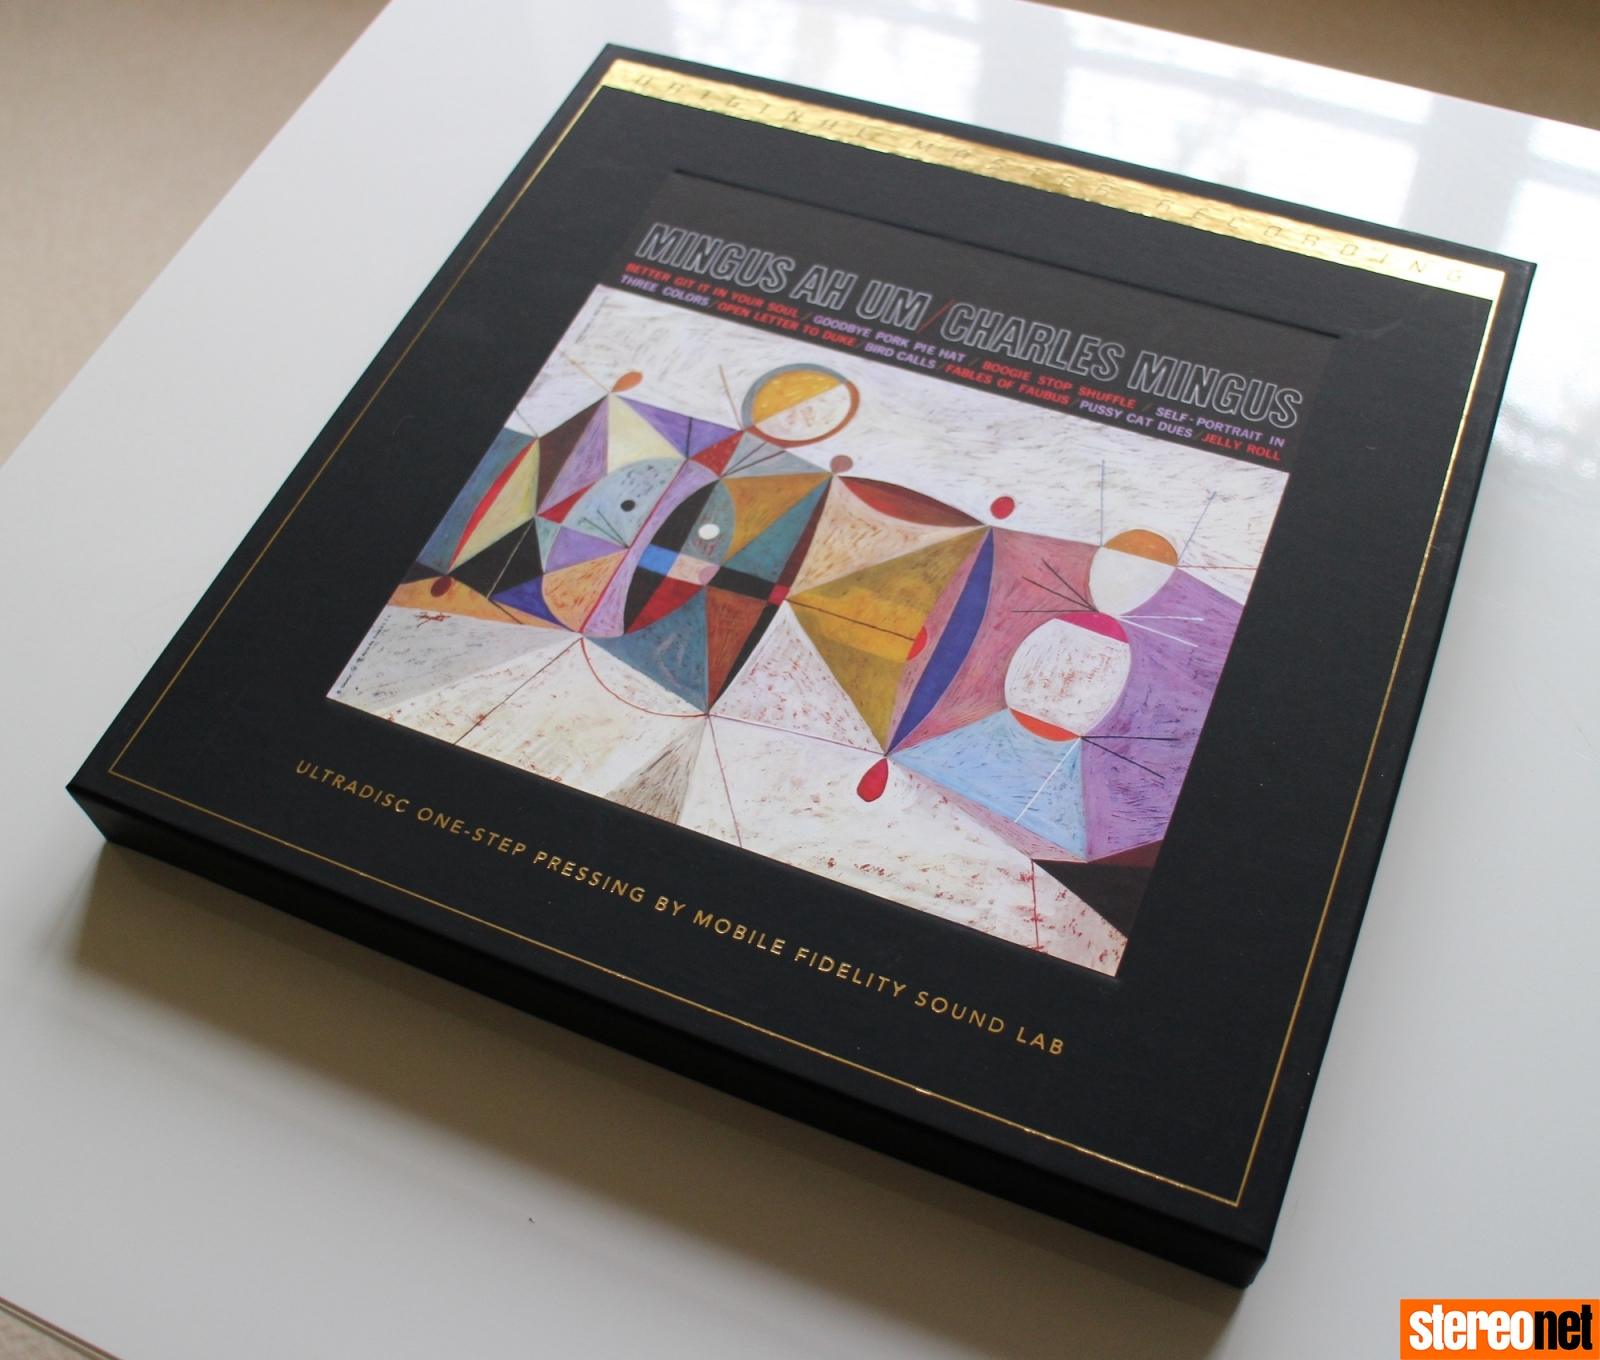 Mobile Fidelity Sound Labs: Charles Mingus – Ah Um Review